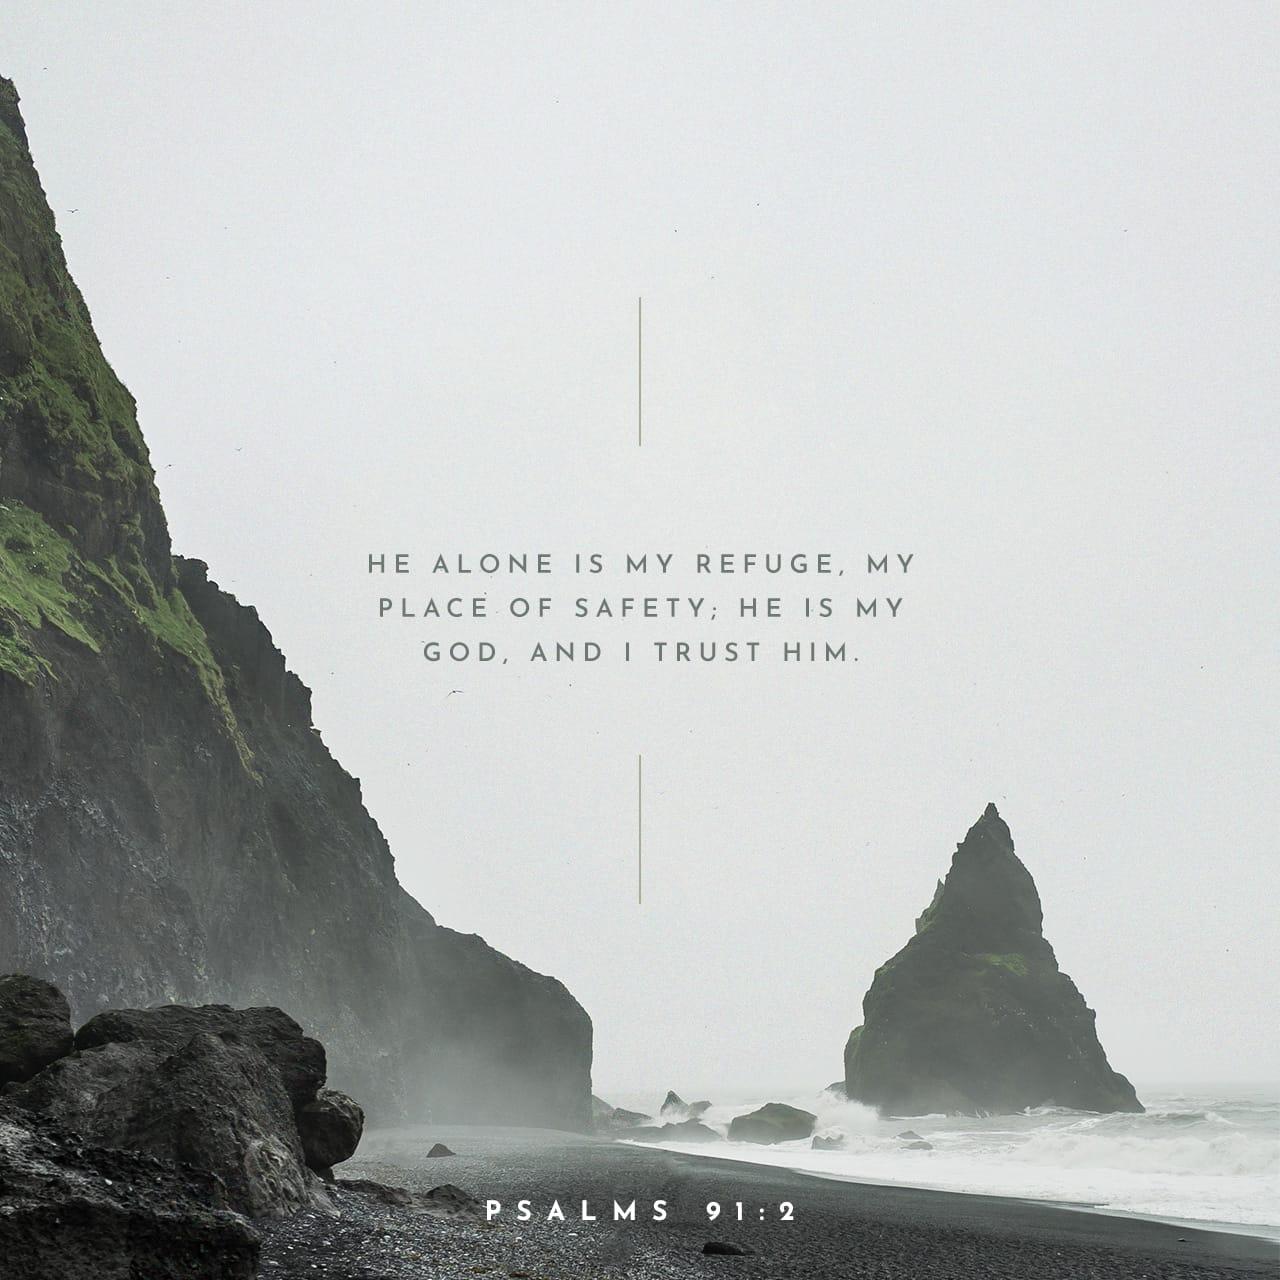 Psalms 91:2 I will say of the LORD, He is my refuge and my